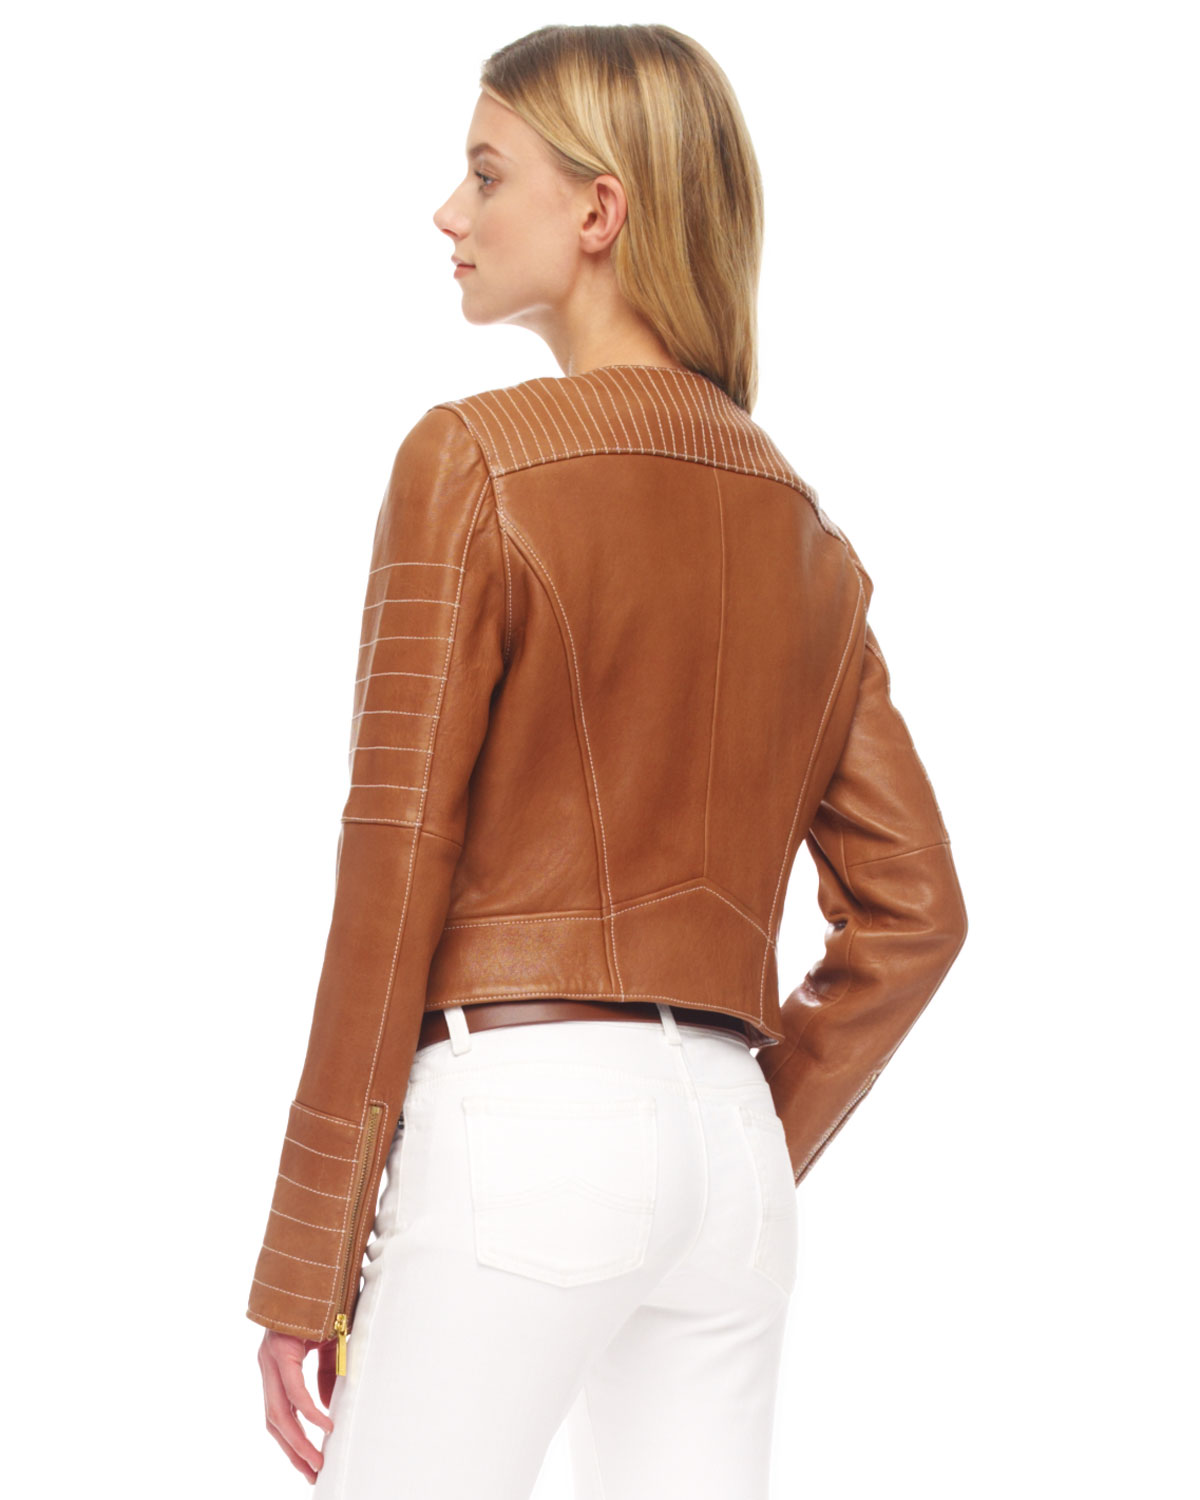 ad9a12097 MICHAEL Michael Kors Brown Quilted Leather Biker Jacket